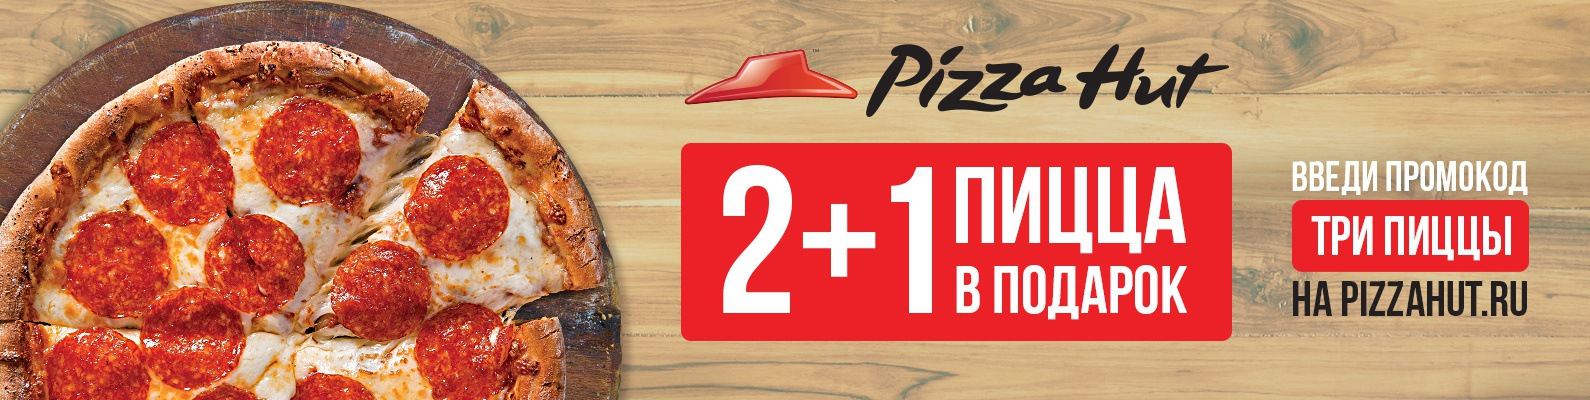 pizza hut market segmentation Solutions will be offered to help little caesars pizza advance in its market share locally here papa johns, pizza hut, and other major pizza companies.